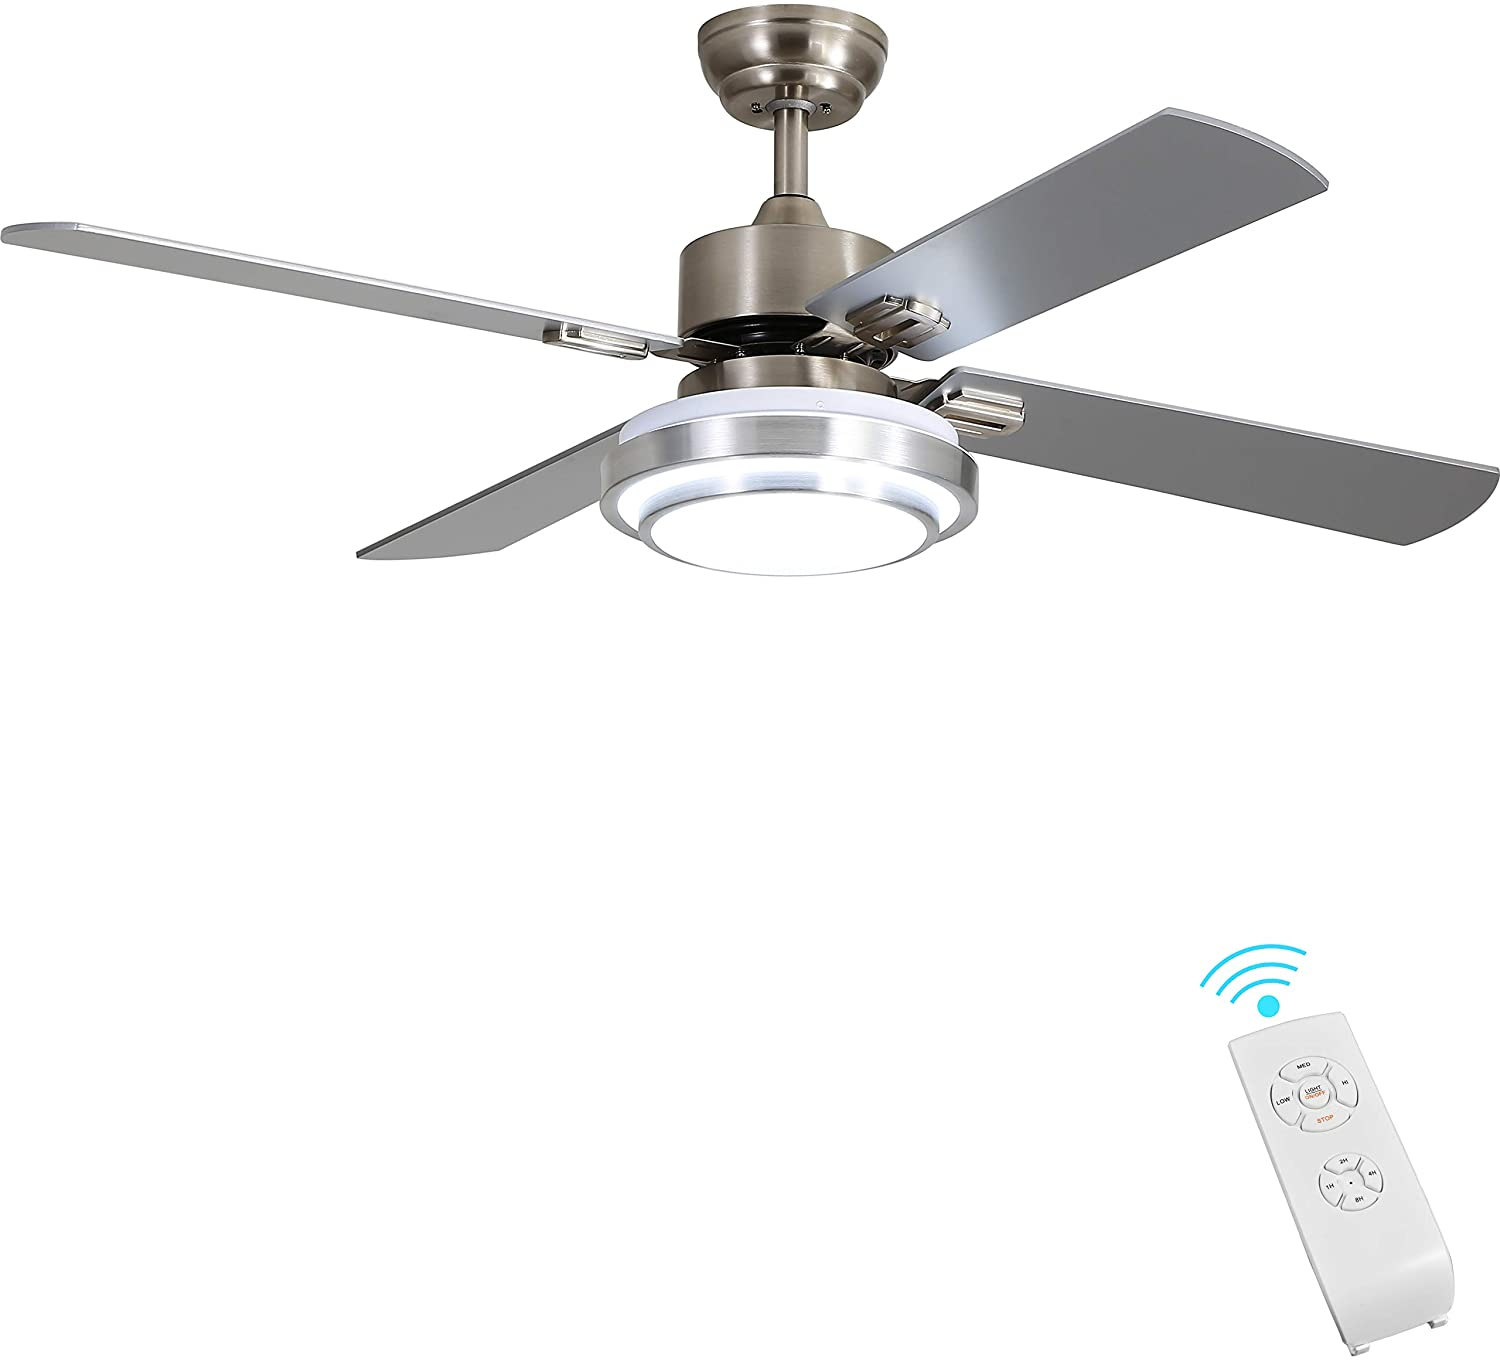 Indoor Ceiling Fan Light Fixtures Finxin Remote Led 52 Brushed Nickel Ceiling Fans For Bedroom Living Room Dining Room Including Motor Remote Switch 4 Blades Amazon Com